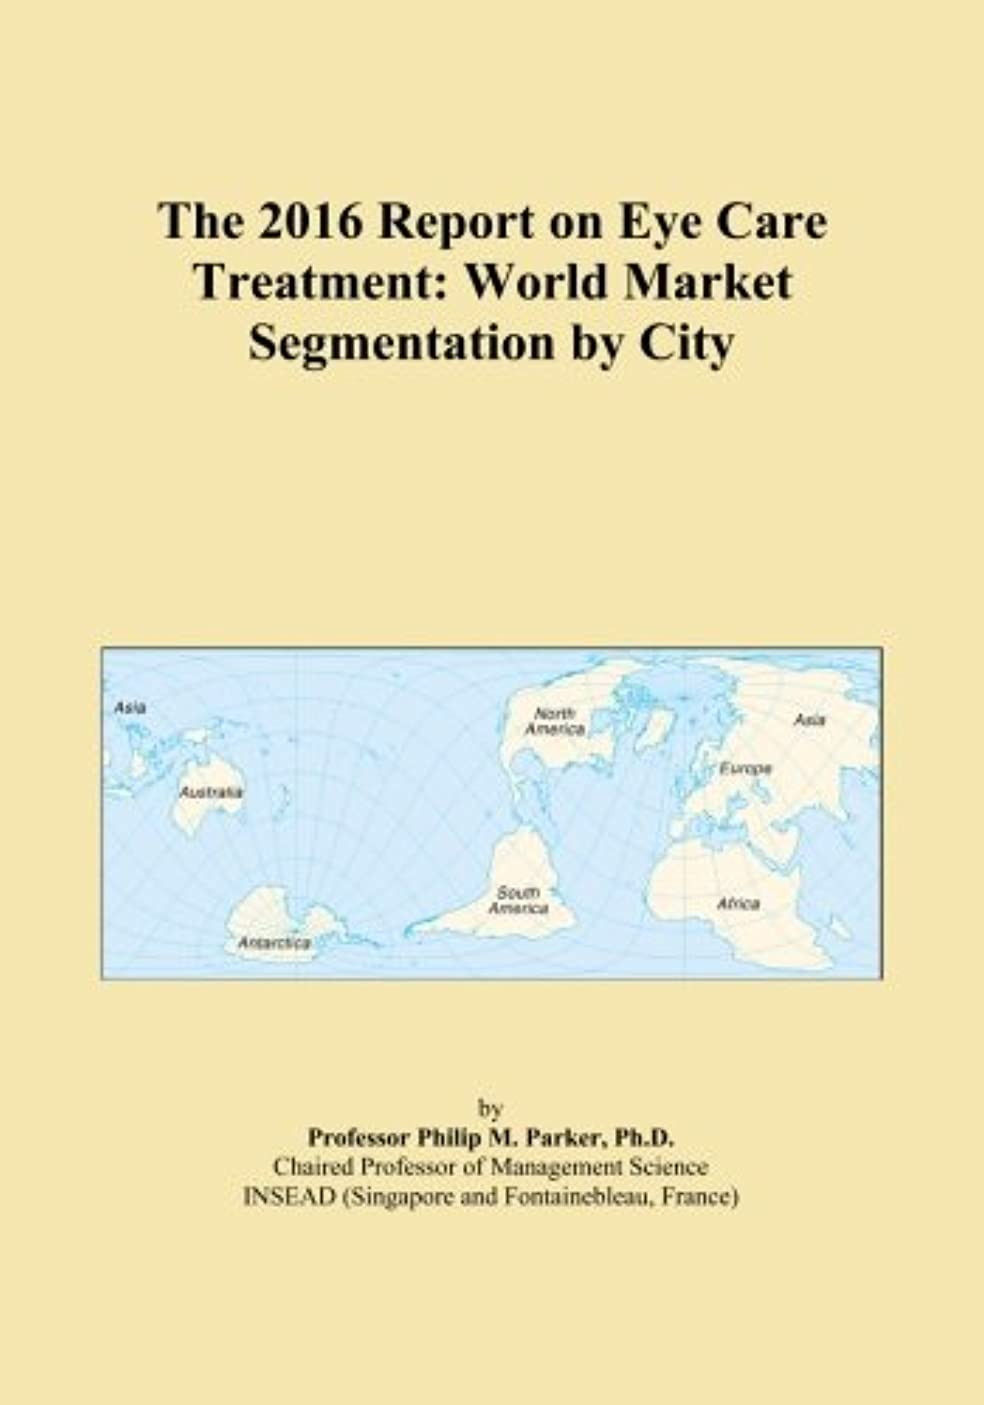 南噂うっかりThe 2016 Report on Eye Care Treatment: World Market Segmentation by City